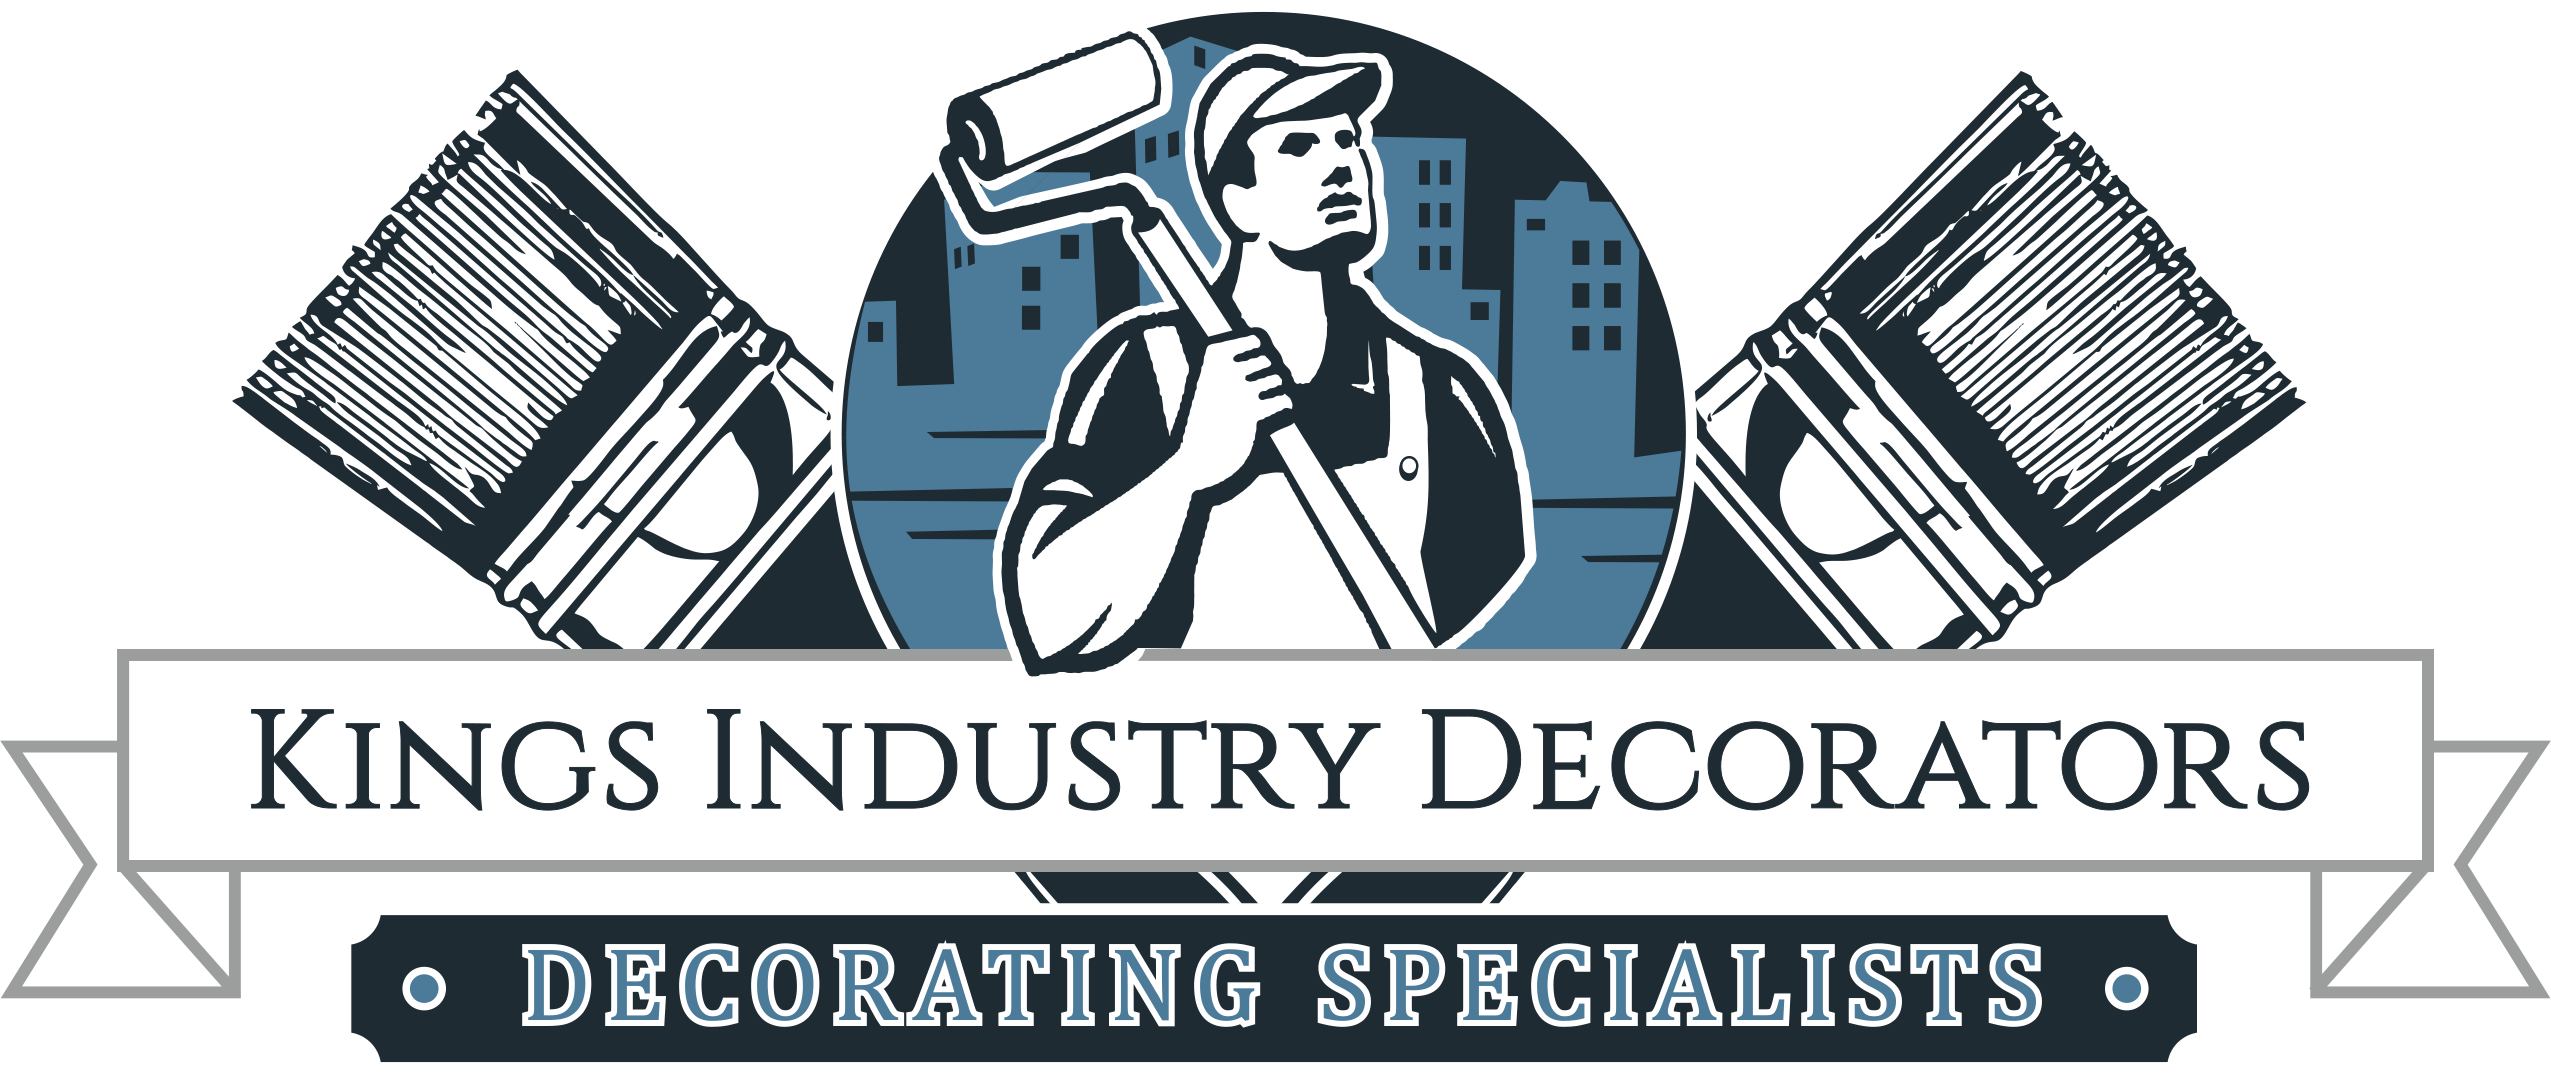 Kings Industry Decorators London